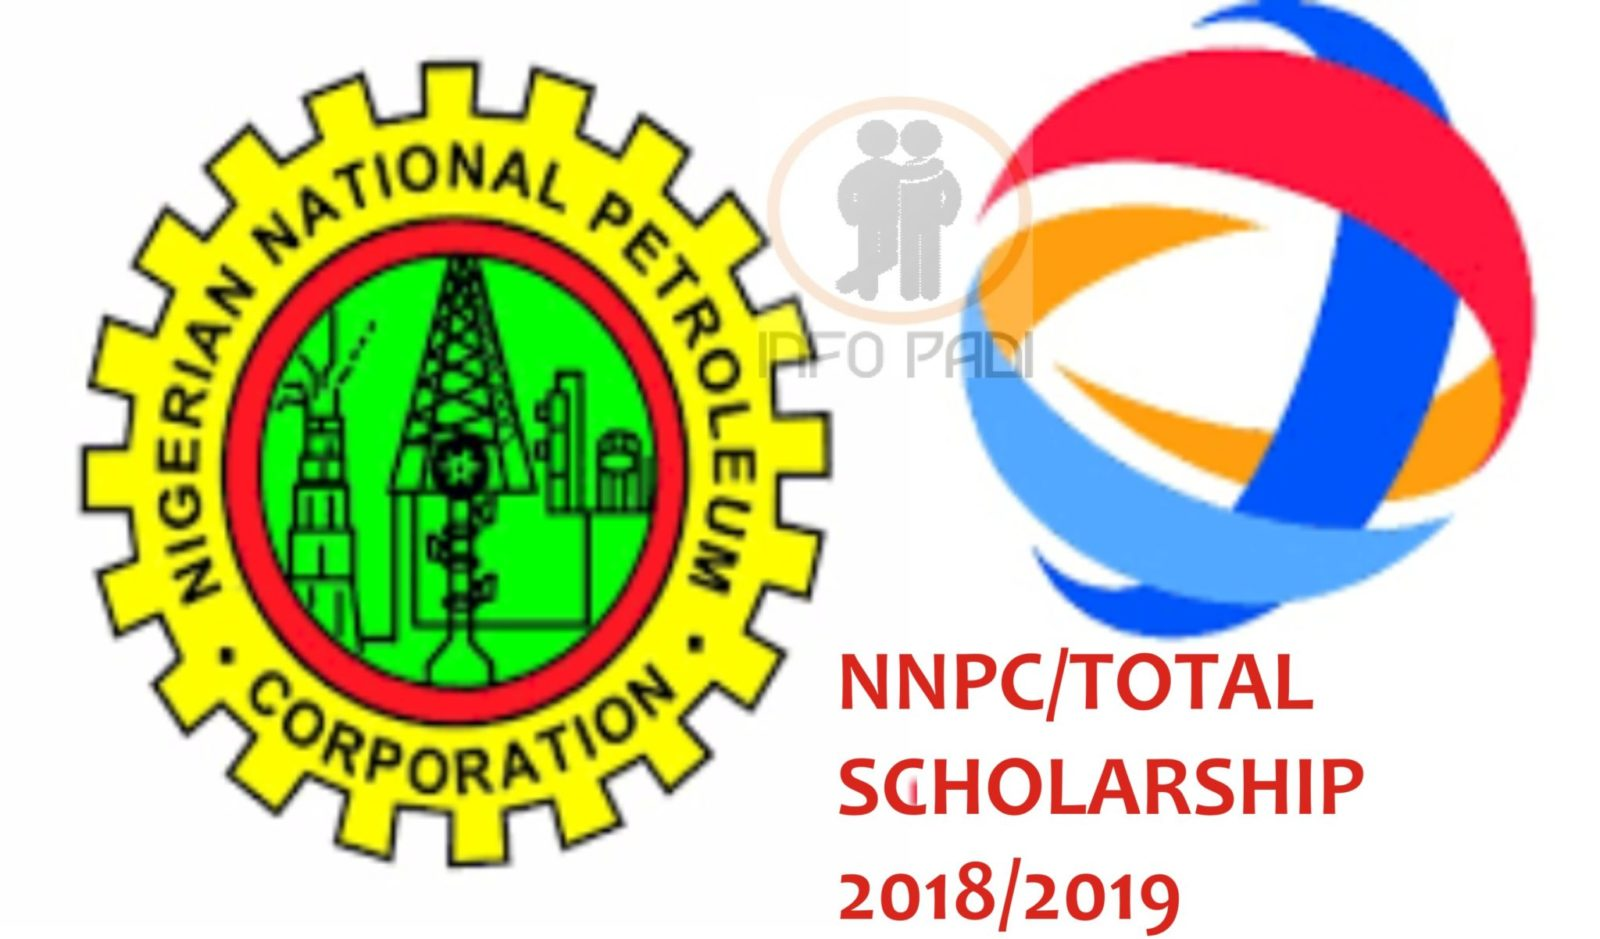 NNPC/Total National Merit Scholarship Scheme 2018/2019 – Proper steps to apply and tips to be successful